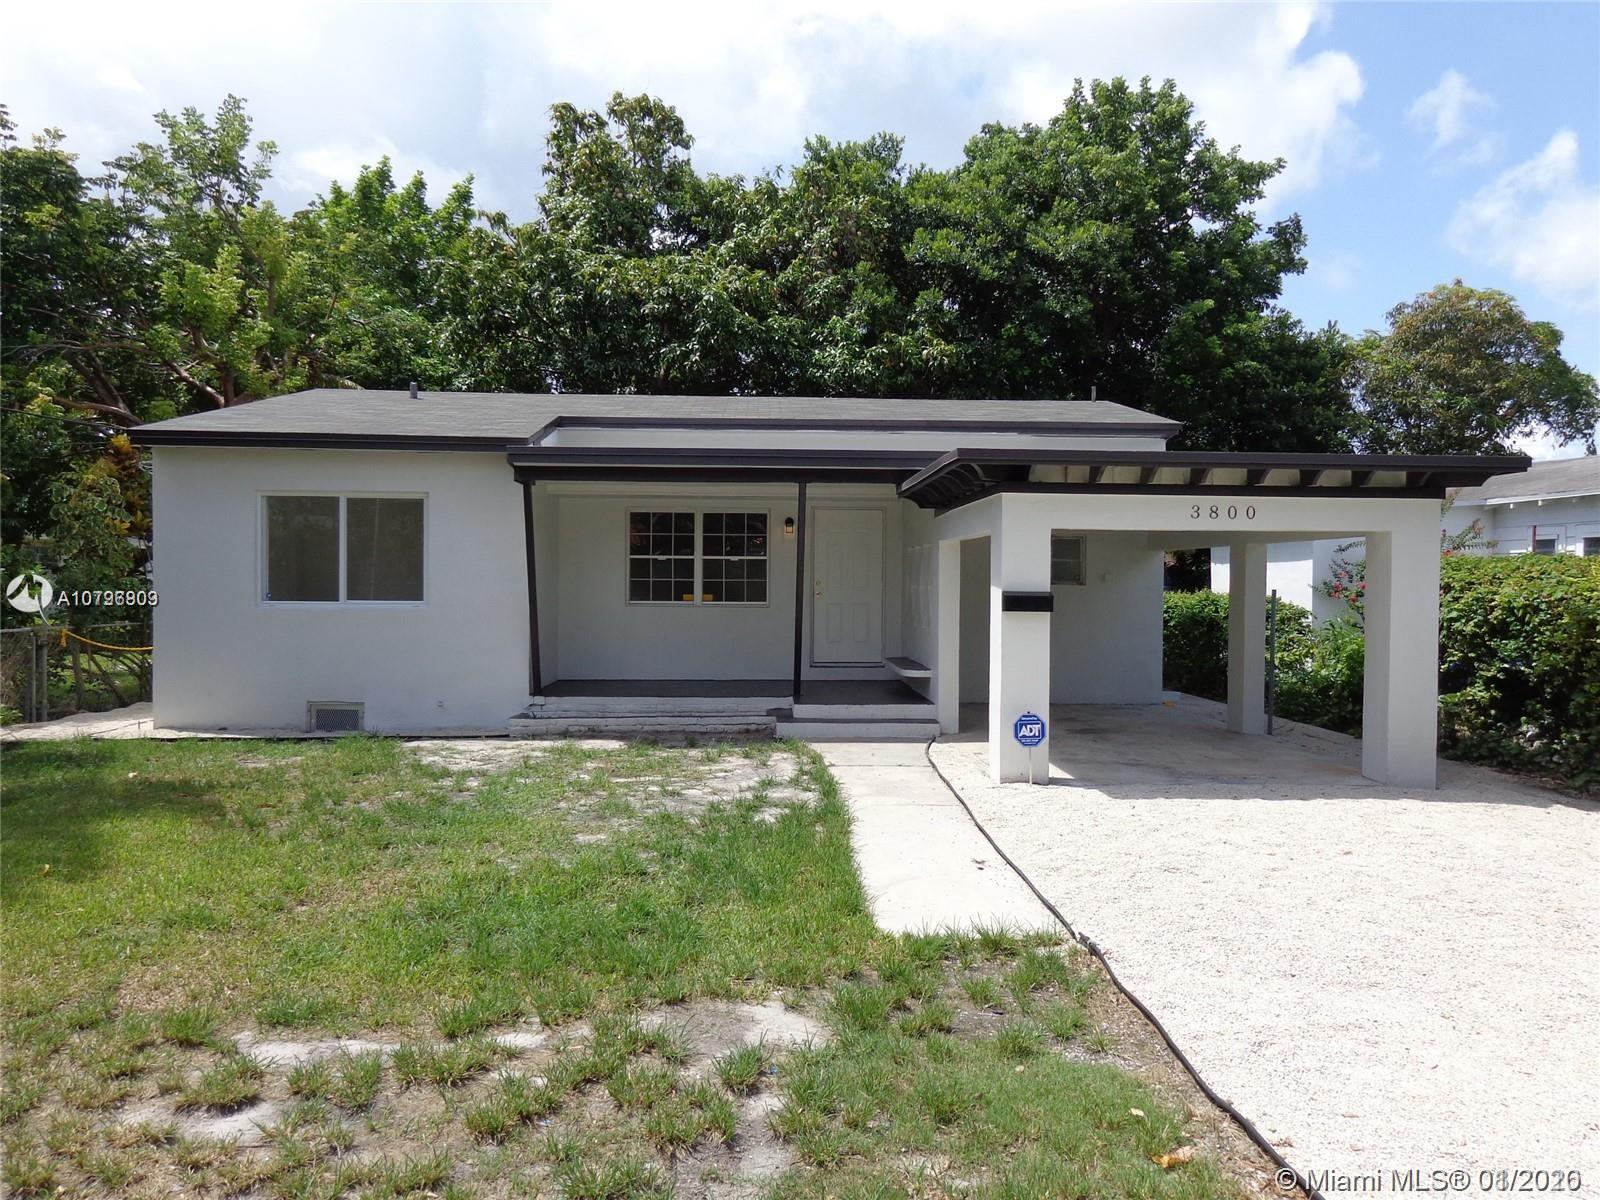 3800  Oak Ave #3800 For Sale A10796809, FL